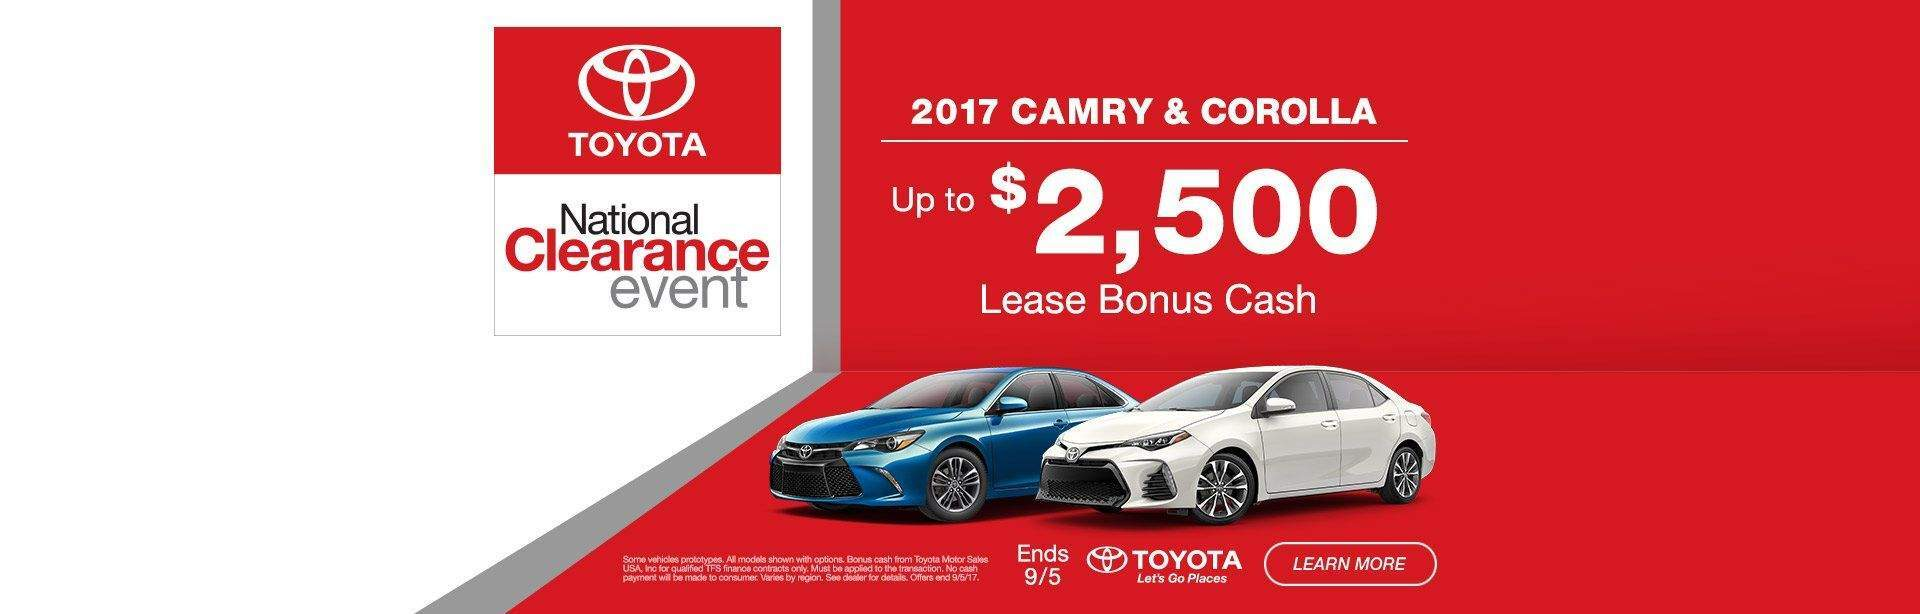 National Clearance Event Camry/Corolla